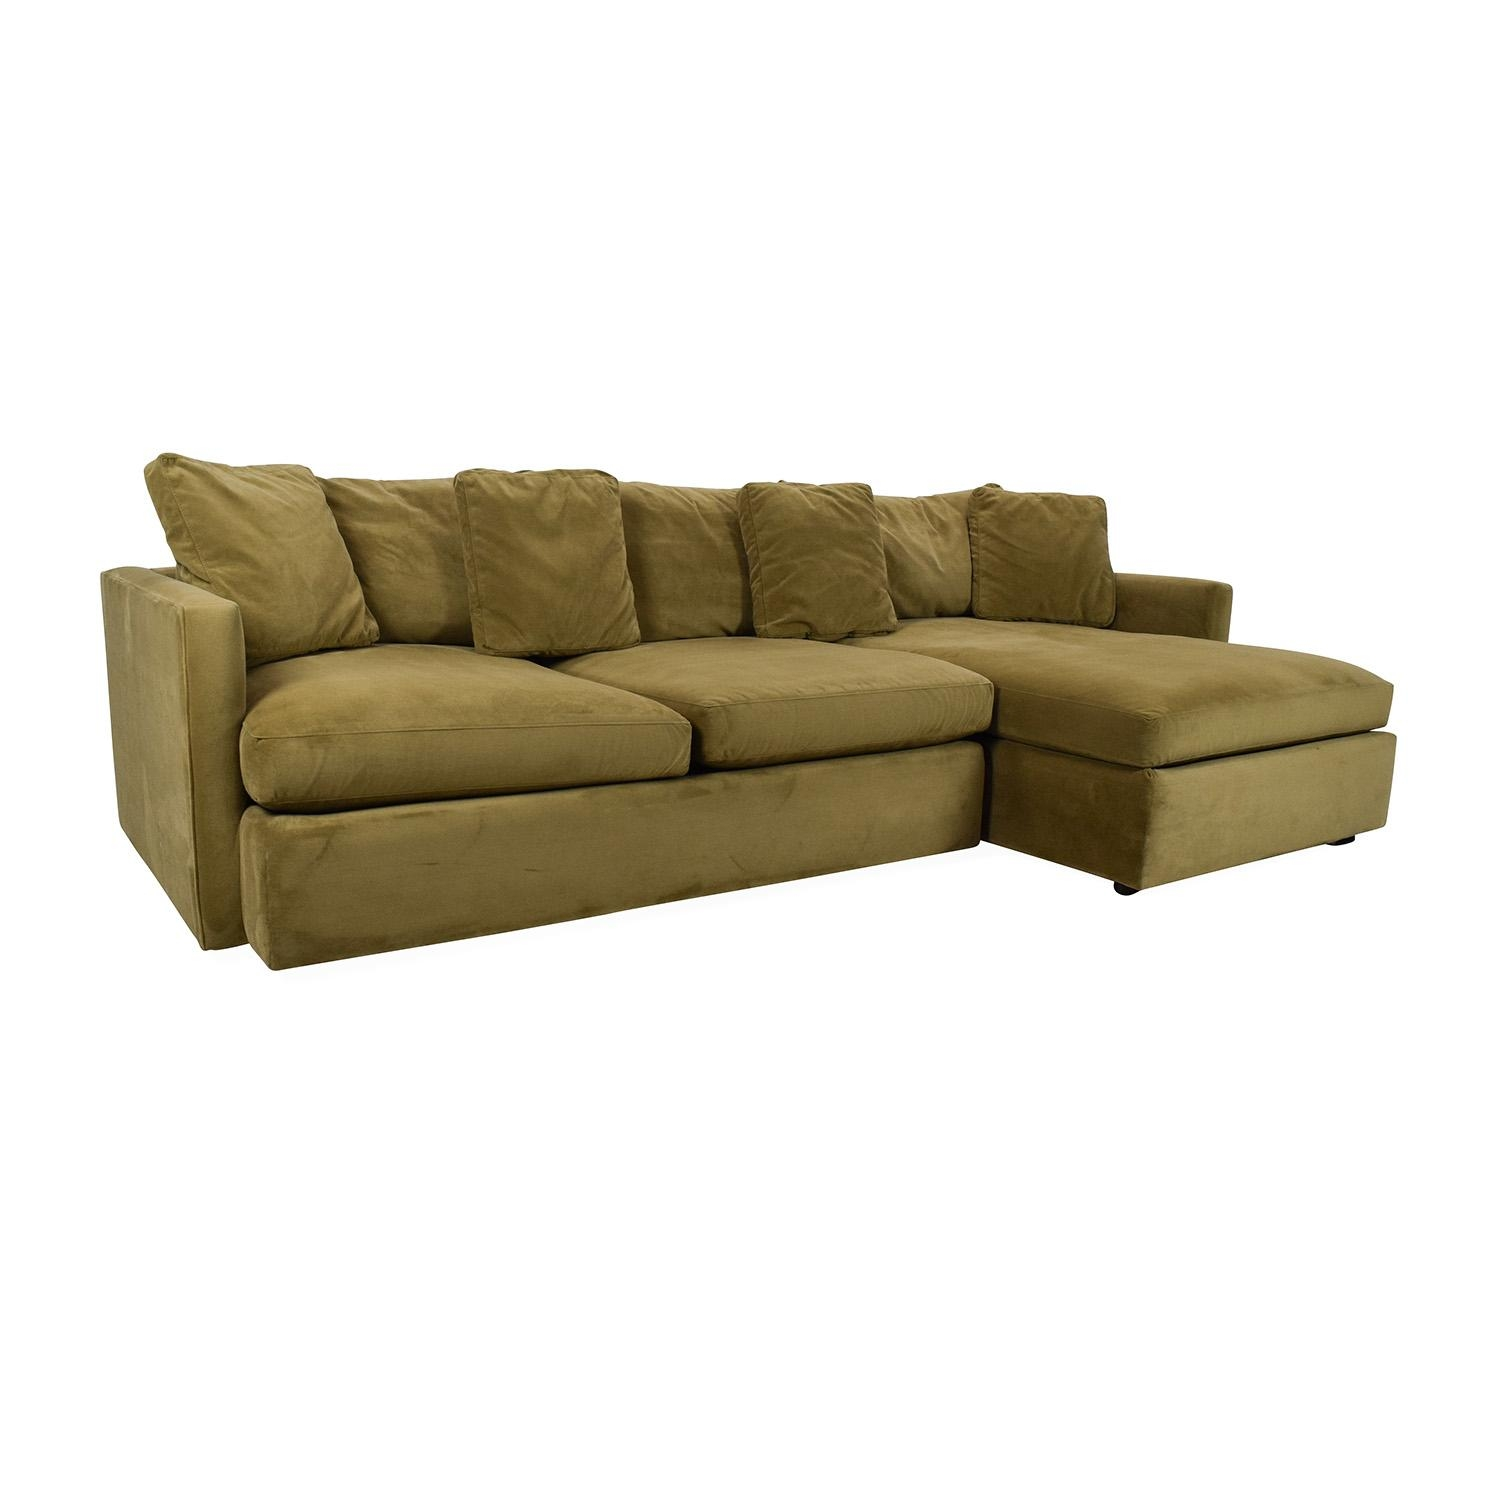 65% Off - Crate And Barrel Crate And Barrel Lounge Ii Sectional with regard to Sectional Crate And Barrel